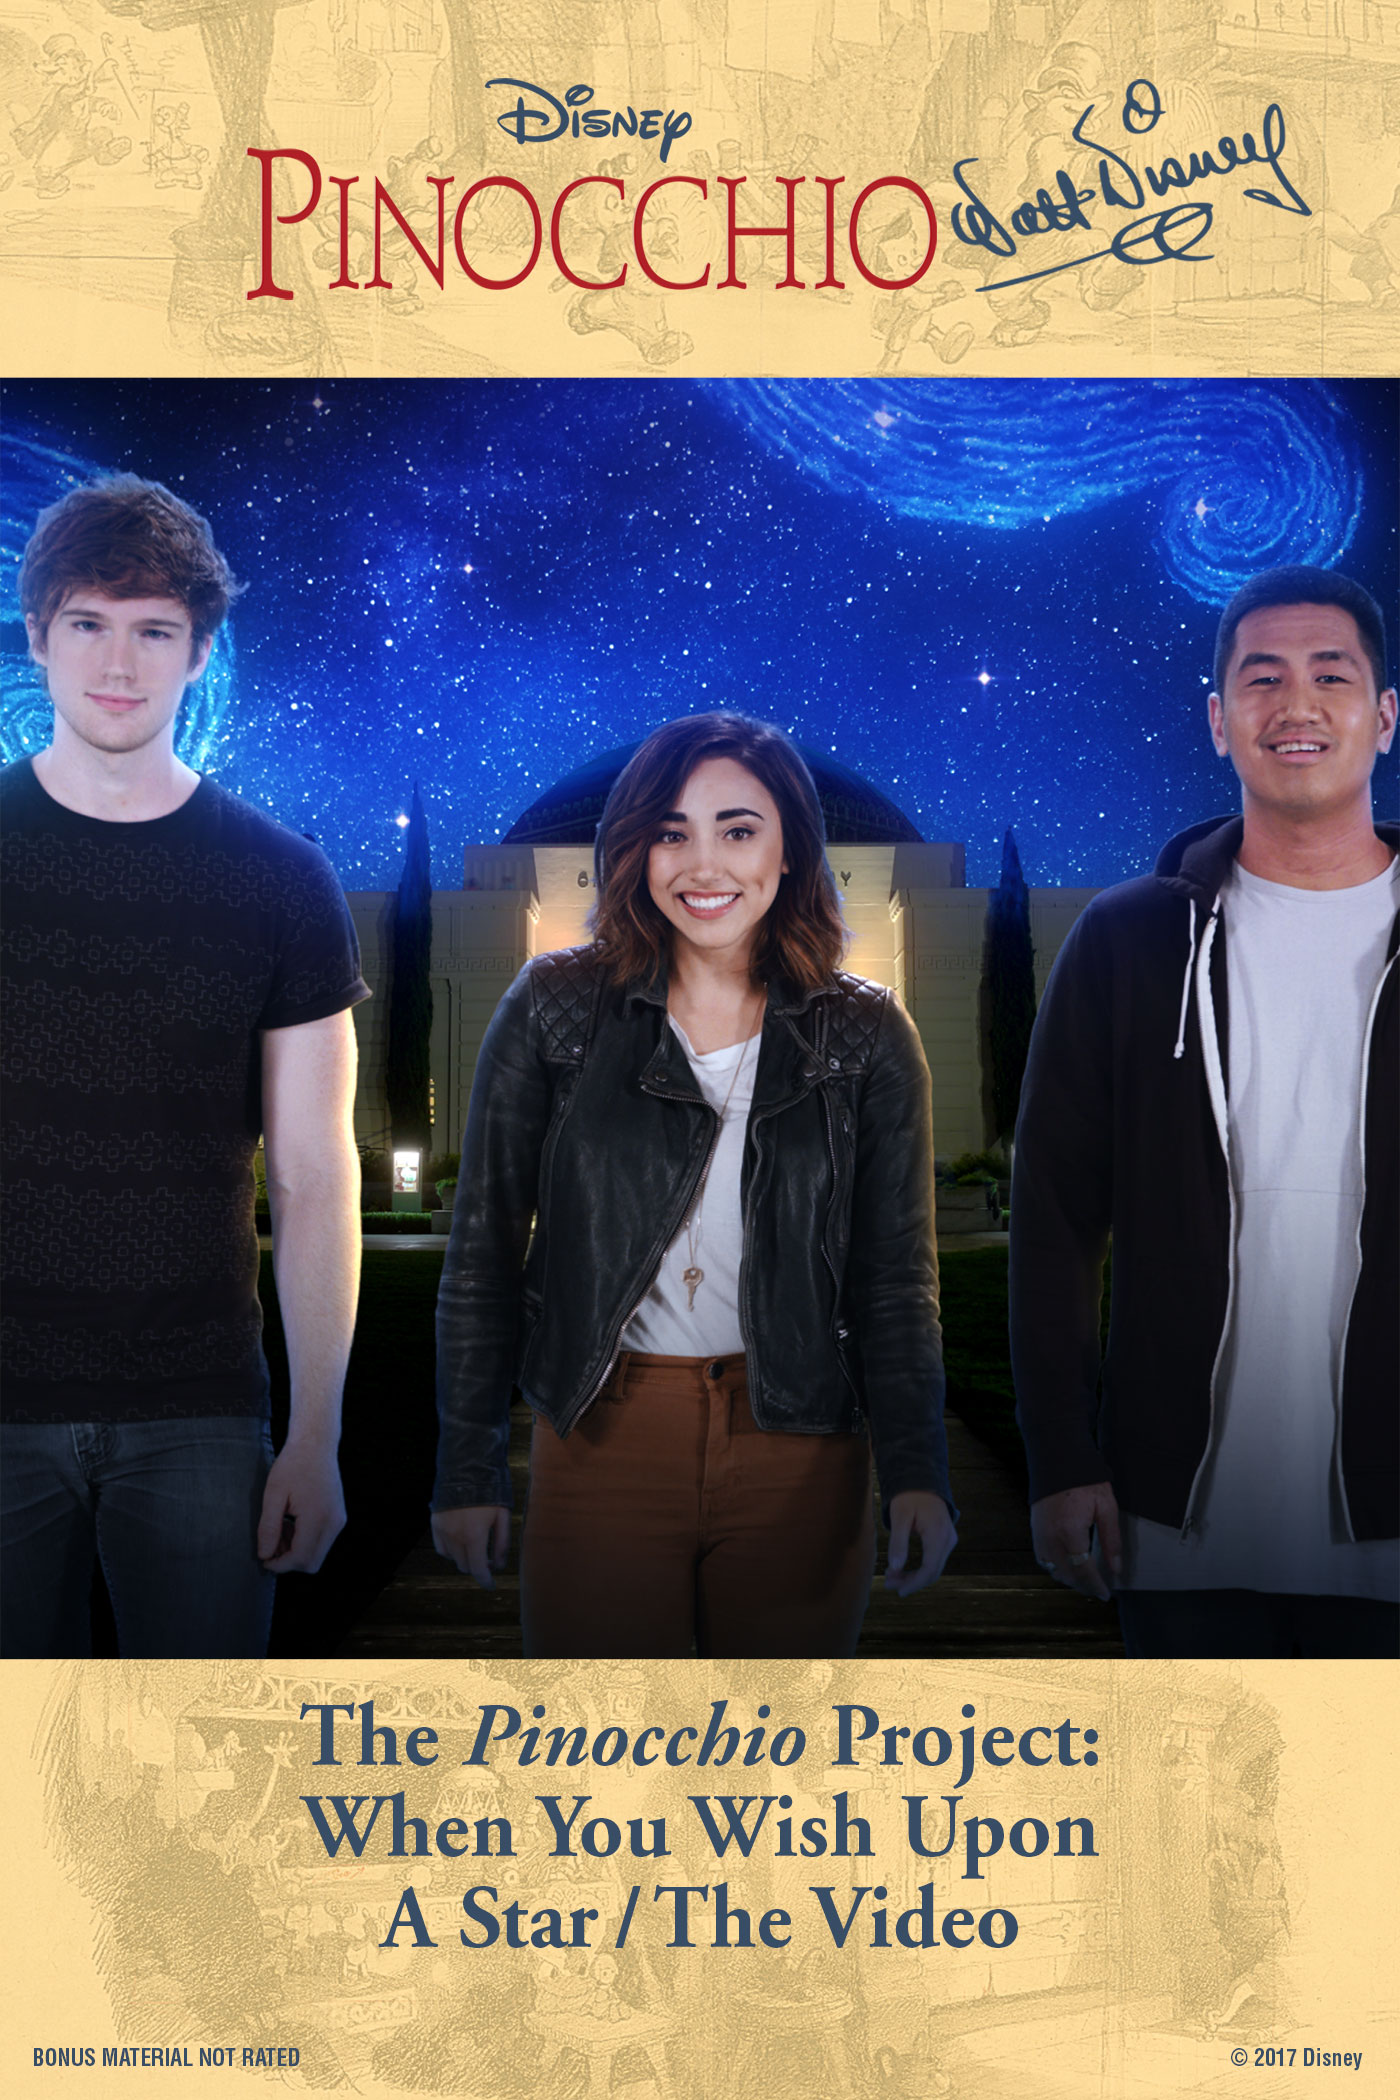 The Pinocchio Project: When You Wish Upon A Star